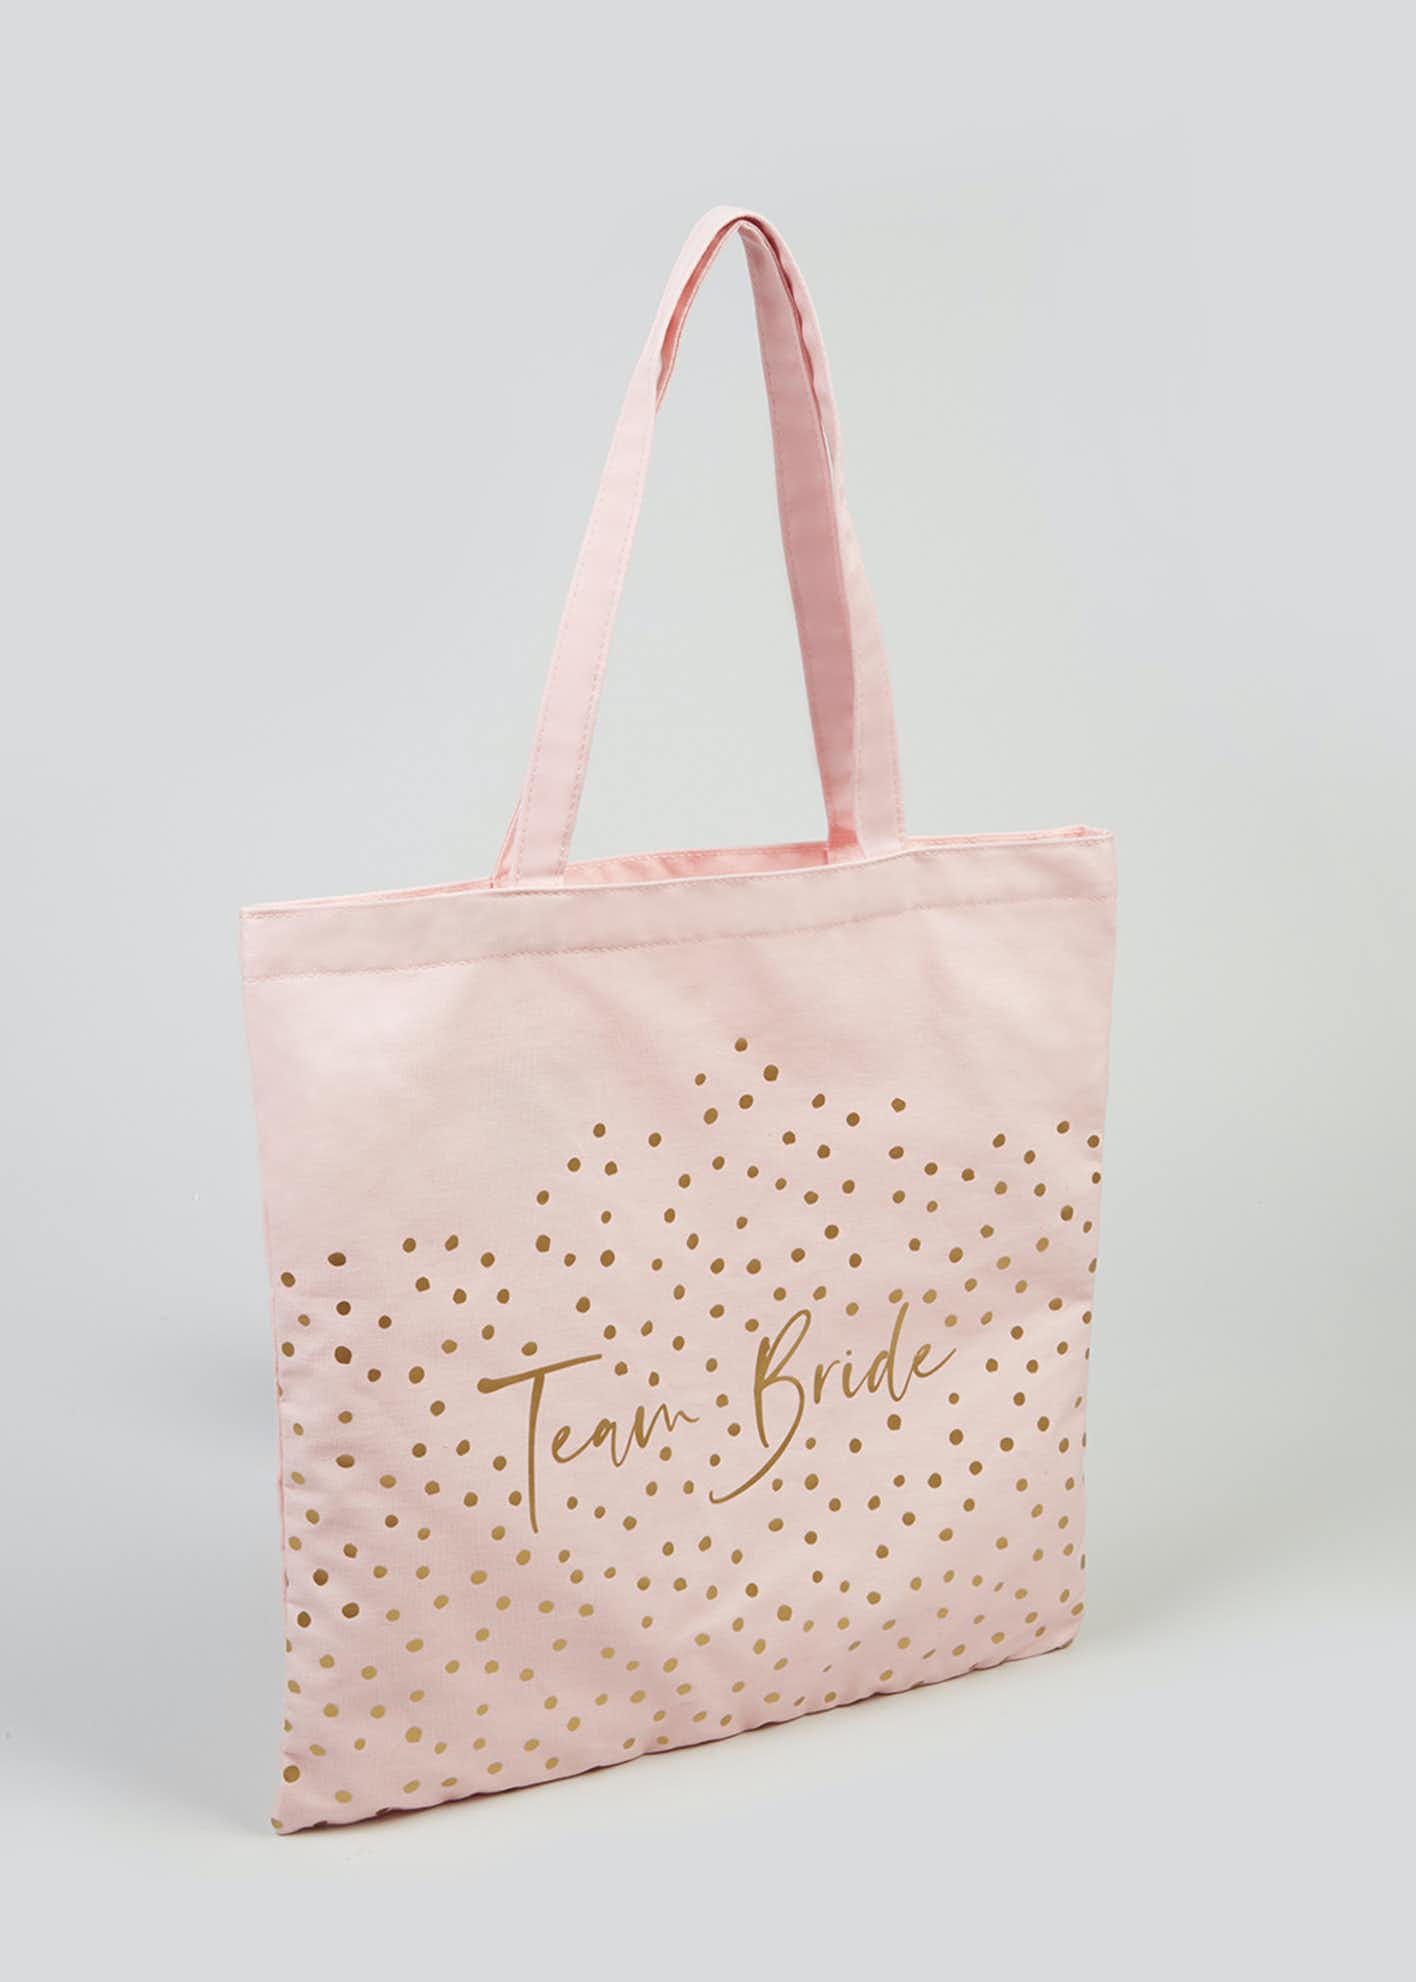 Team Bride Tote Bag (37cm x 37cm)